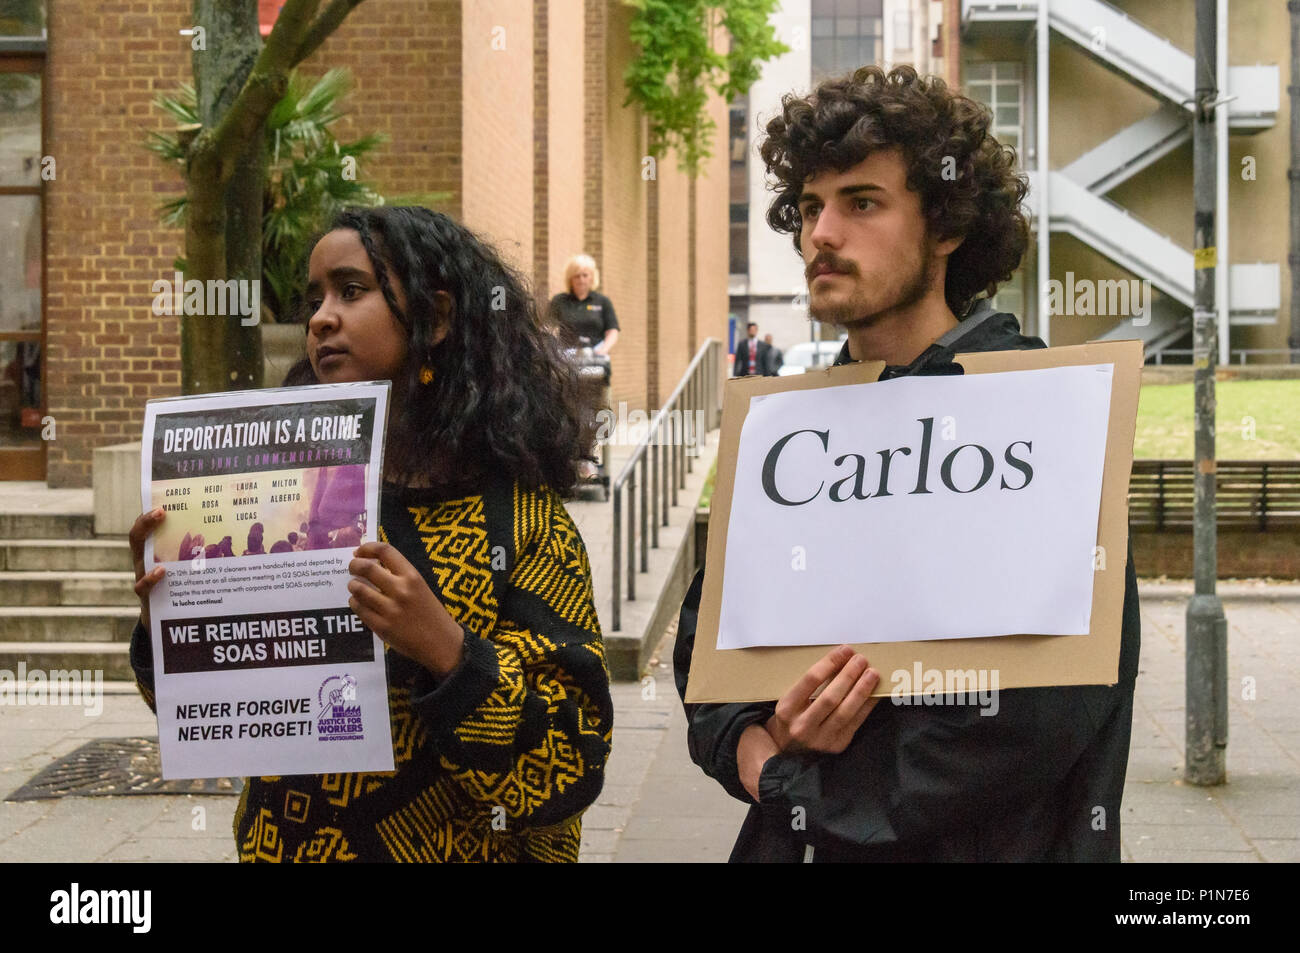 London, UK. 12th June 2018. A rally at the SOAS steps remembers the SOAS cleaners called by SOAS to an 'emergency meeting' at 6:30am on 12th June 2009 after cleaners had campaigned to get the London Living Wage. A few minutes after the start of the meeting, agents of the UK Border Agency rushed in, handcuffed all the cleaners and held them for questioning. Nine were then deported. Credit: Peter Marshall/Alamy Live News - Stock Image